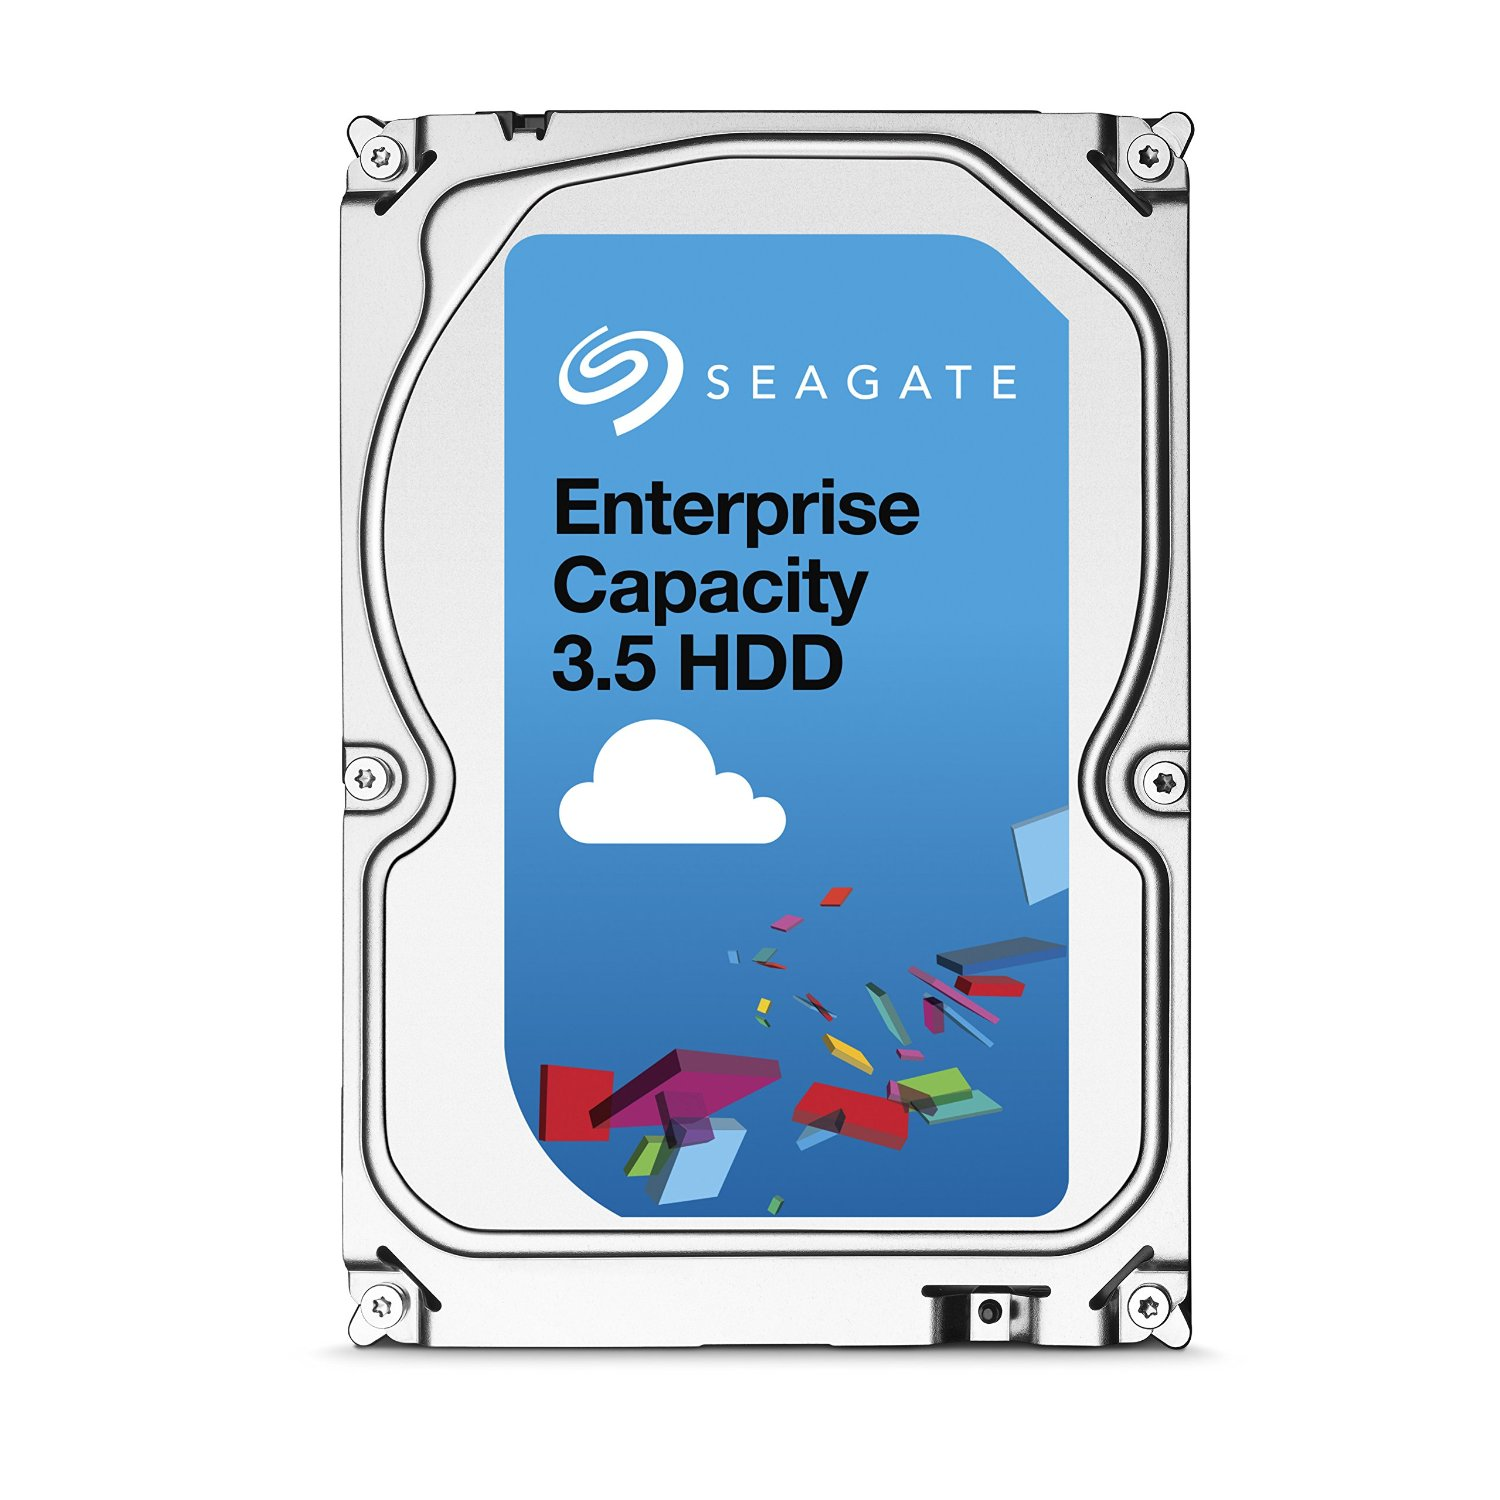 Seagate Enterprise for Bulk-Data Applications Engineered for 24x